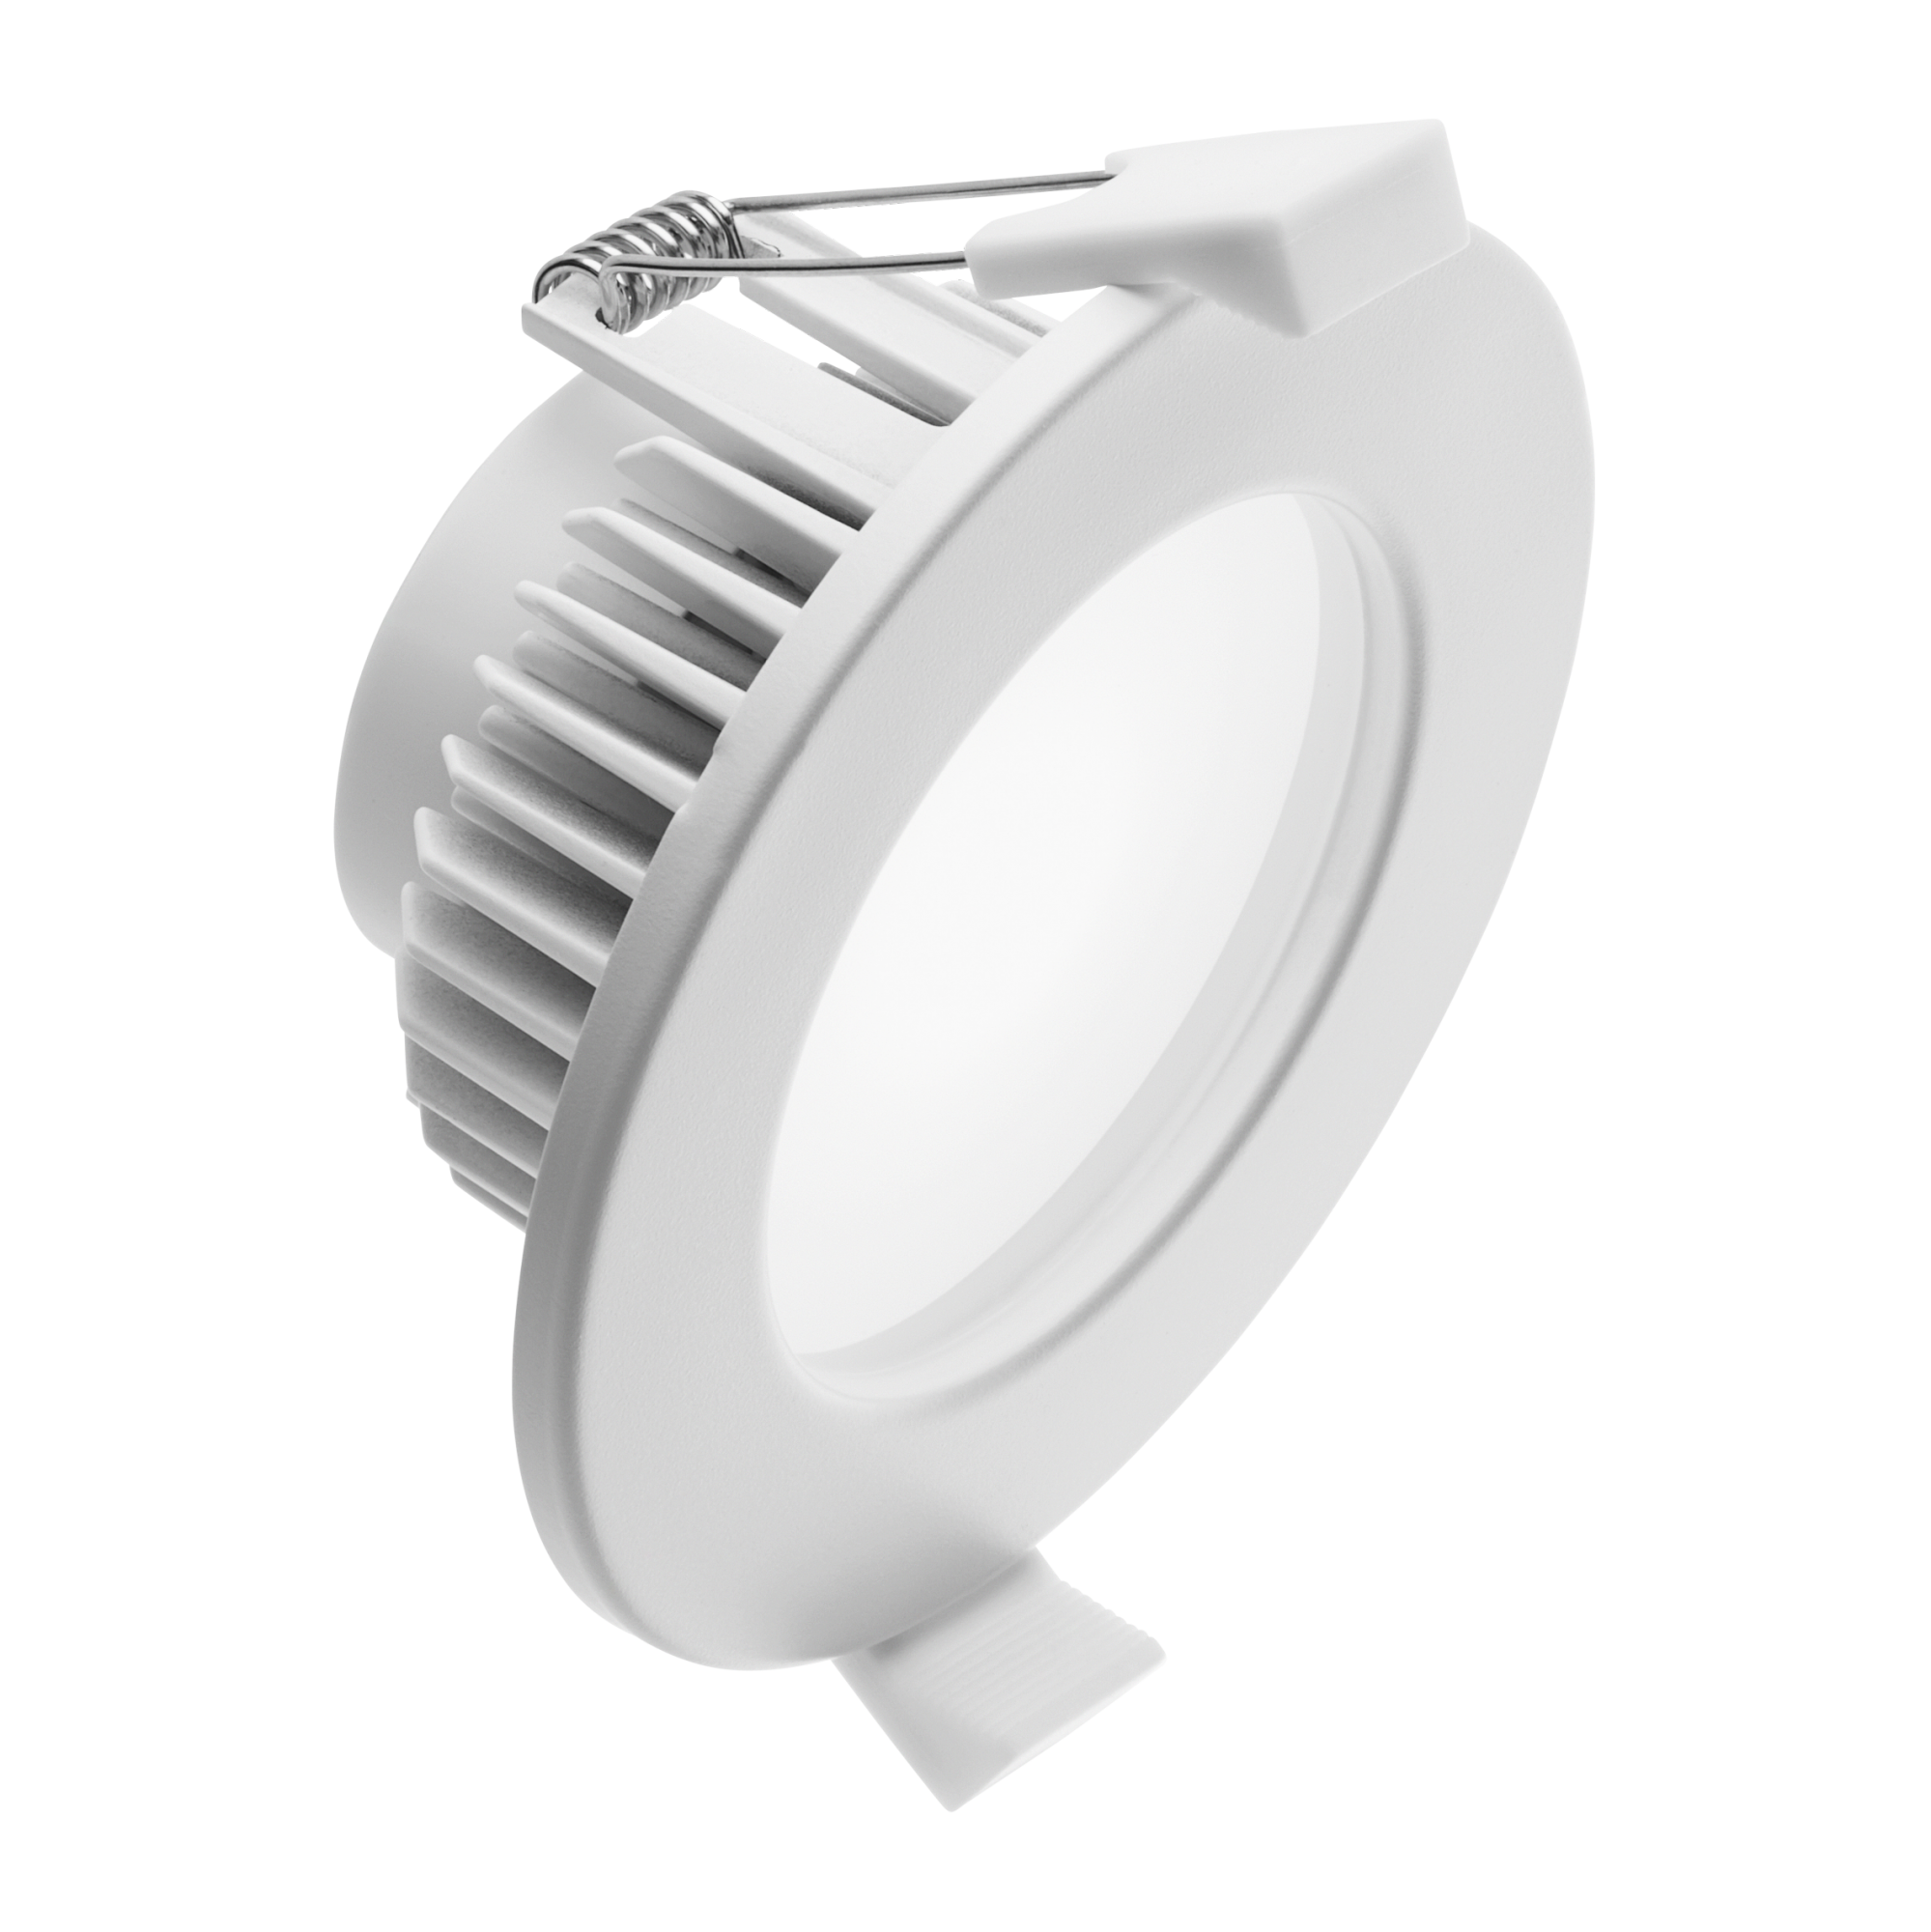 Lumitex Mytilux Mini residential LED downlight - Electrical